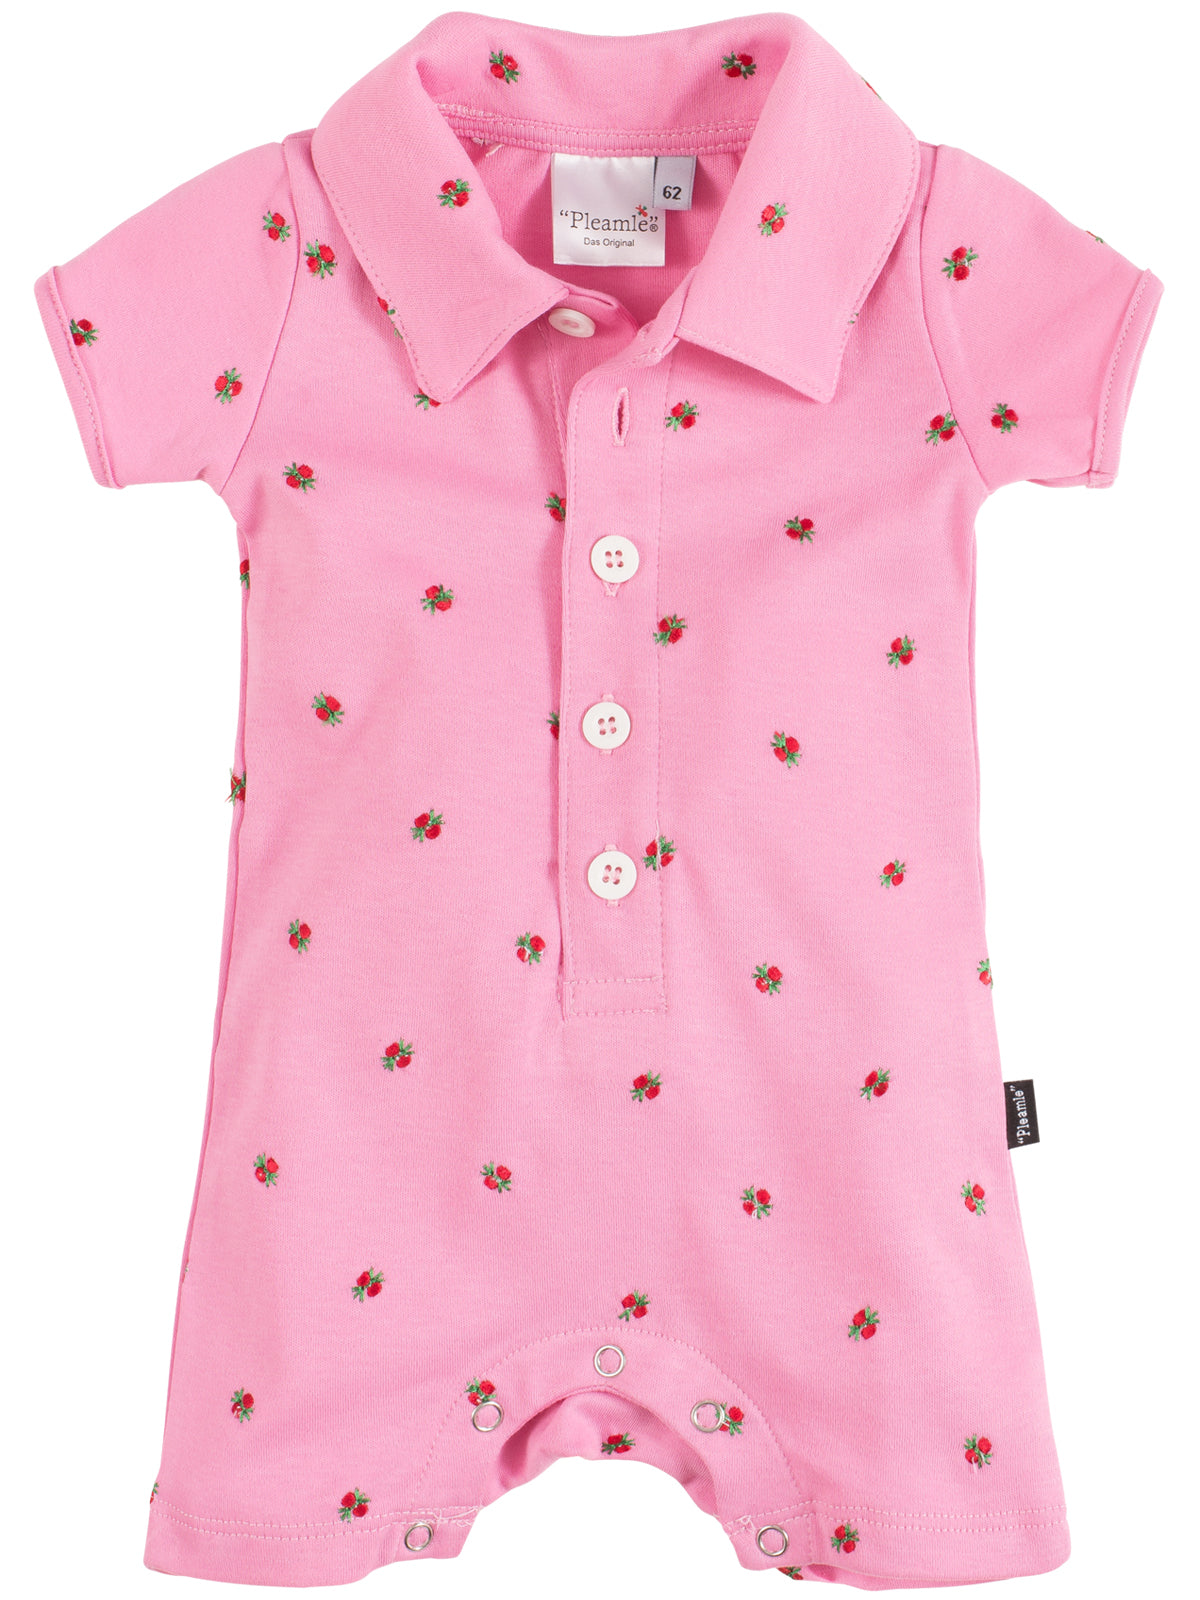 Pleamle Baby Body Kurzarm Original rosa